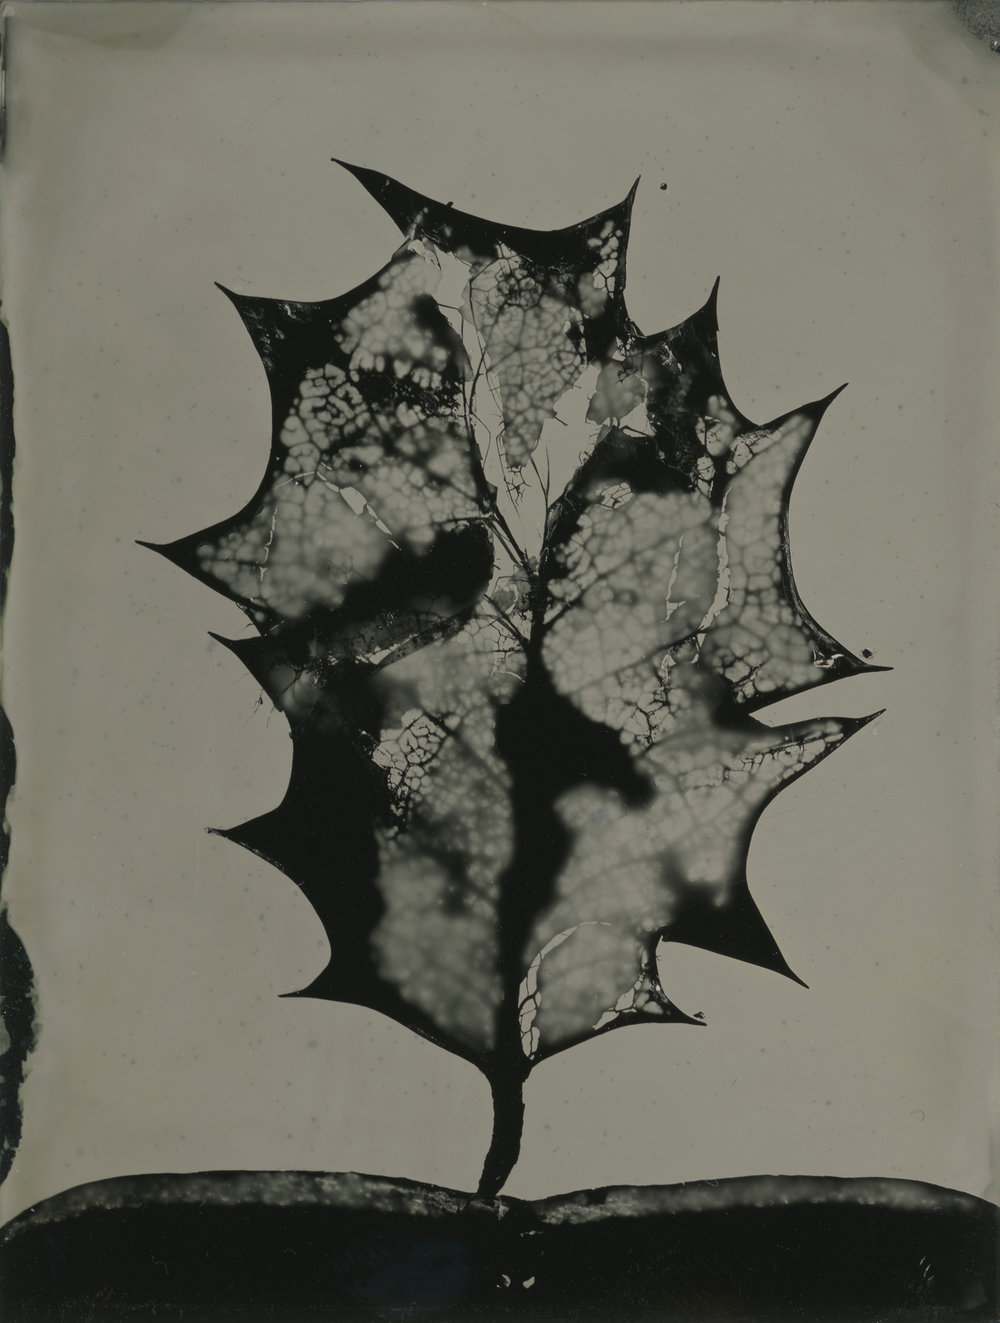 Wet Plate Collodion on 5x4 aluminium | leaves directly on plate (photogram) | Steve Lovegrove